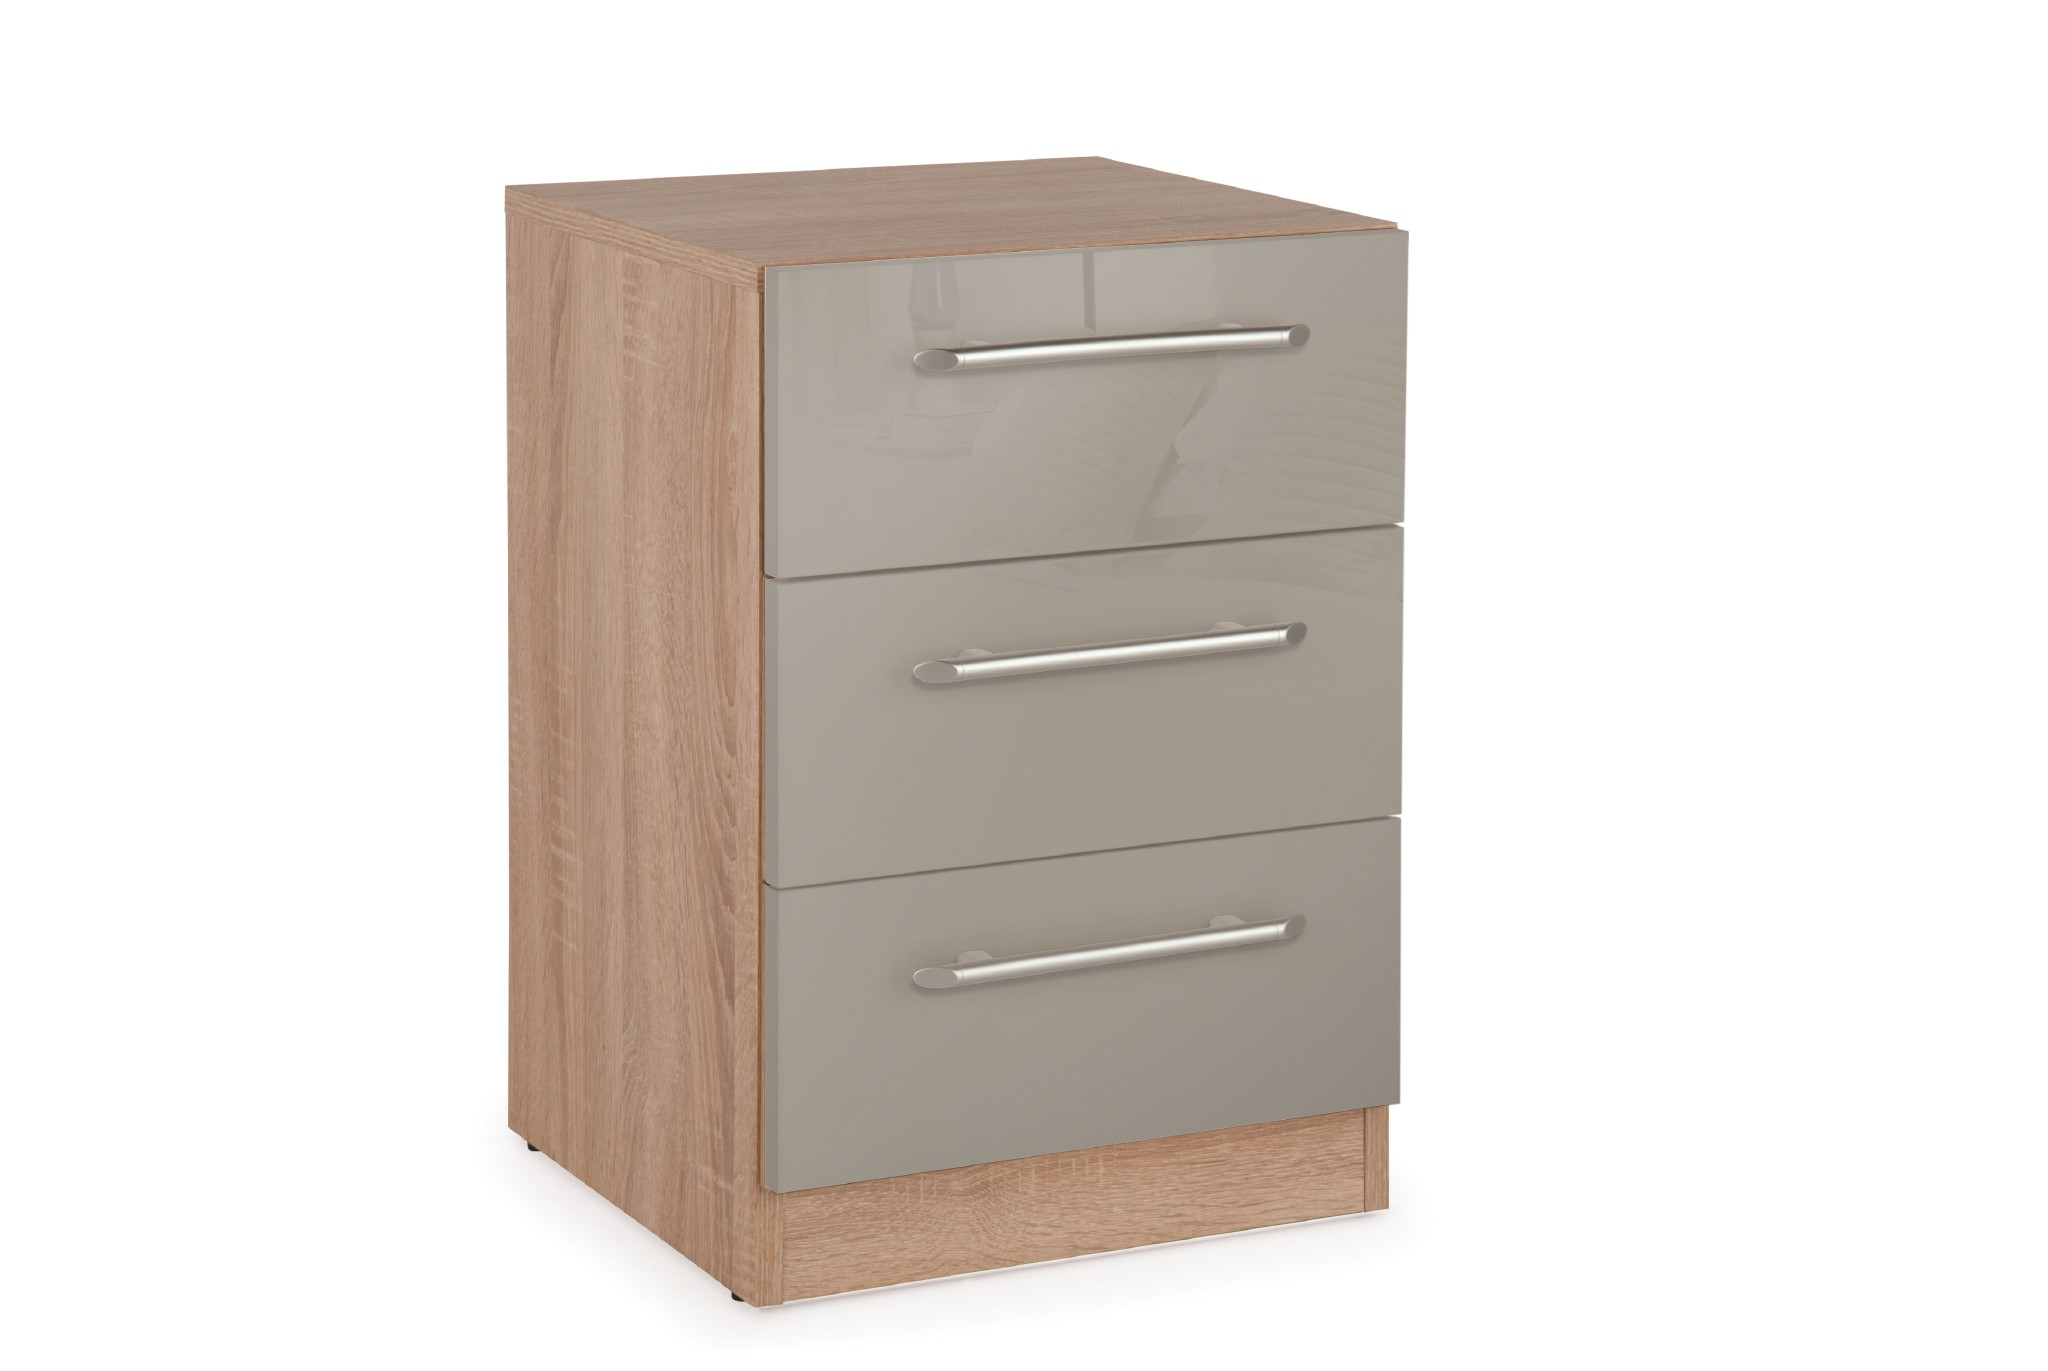 Connect kensington 3 Drawer Bedside